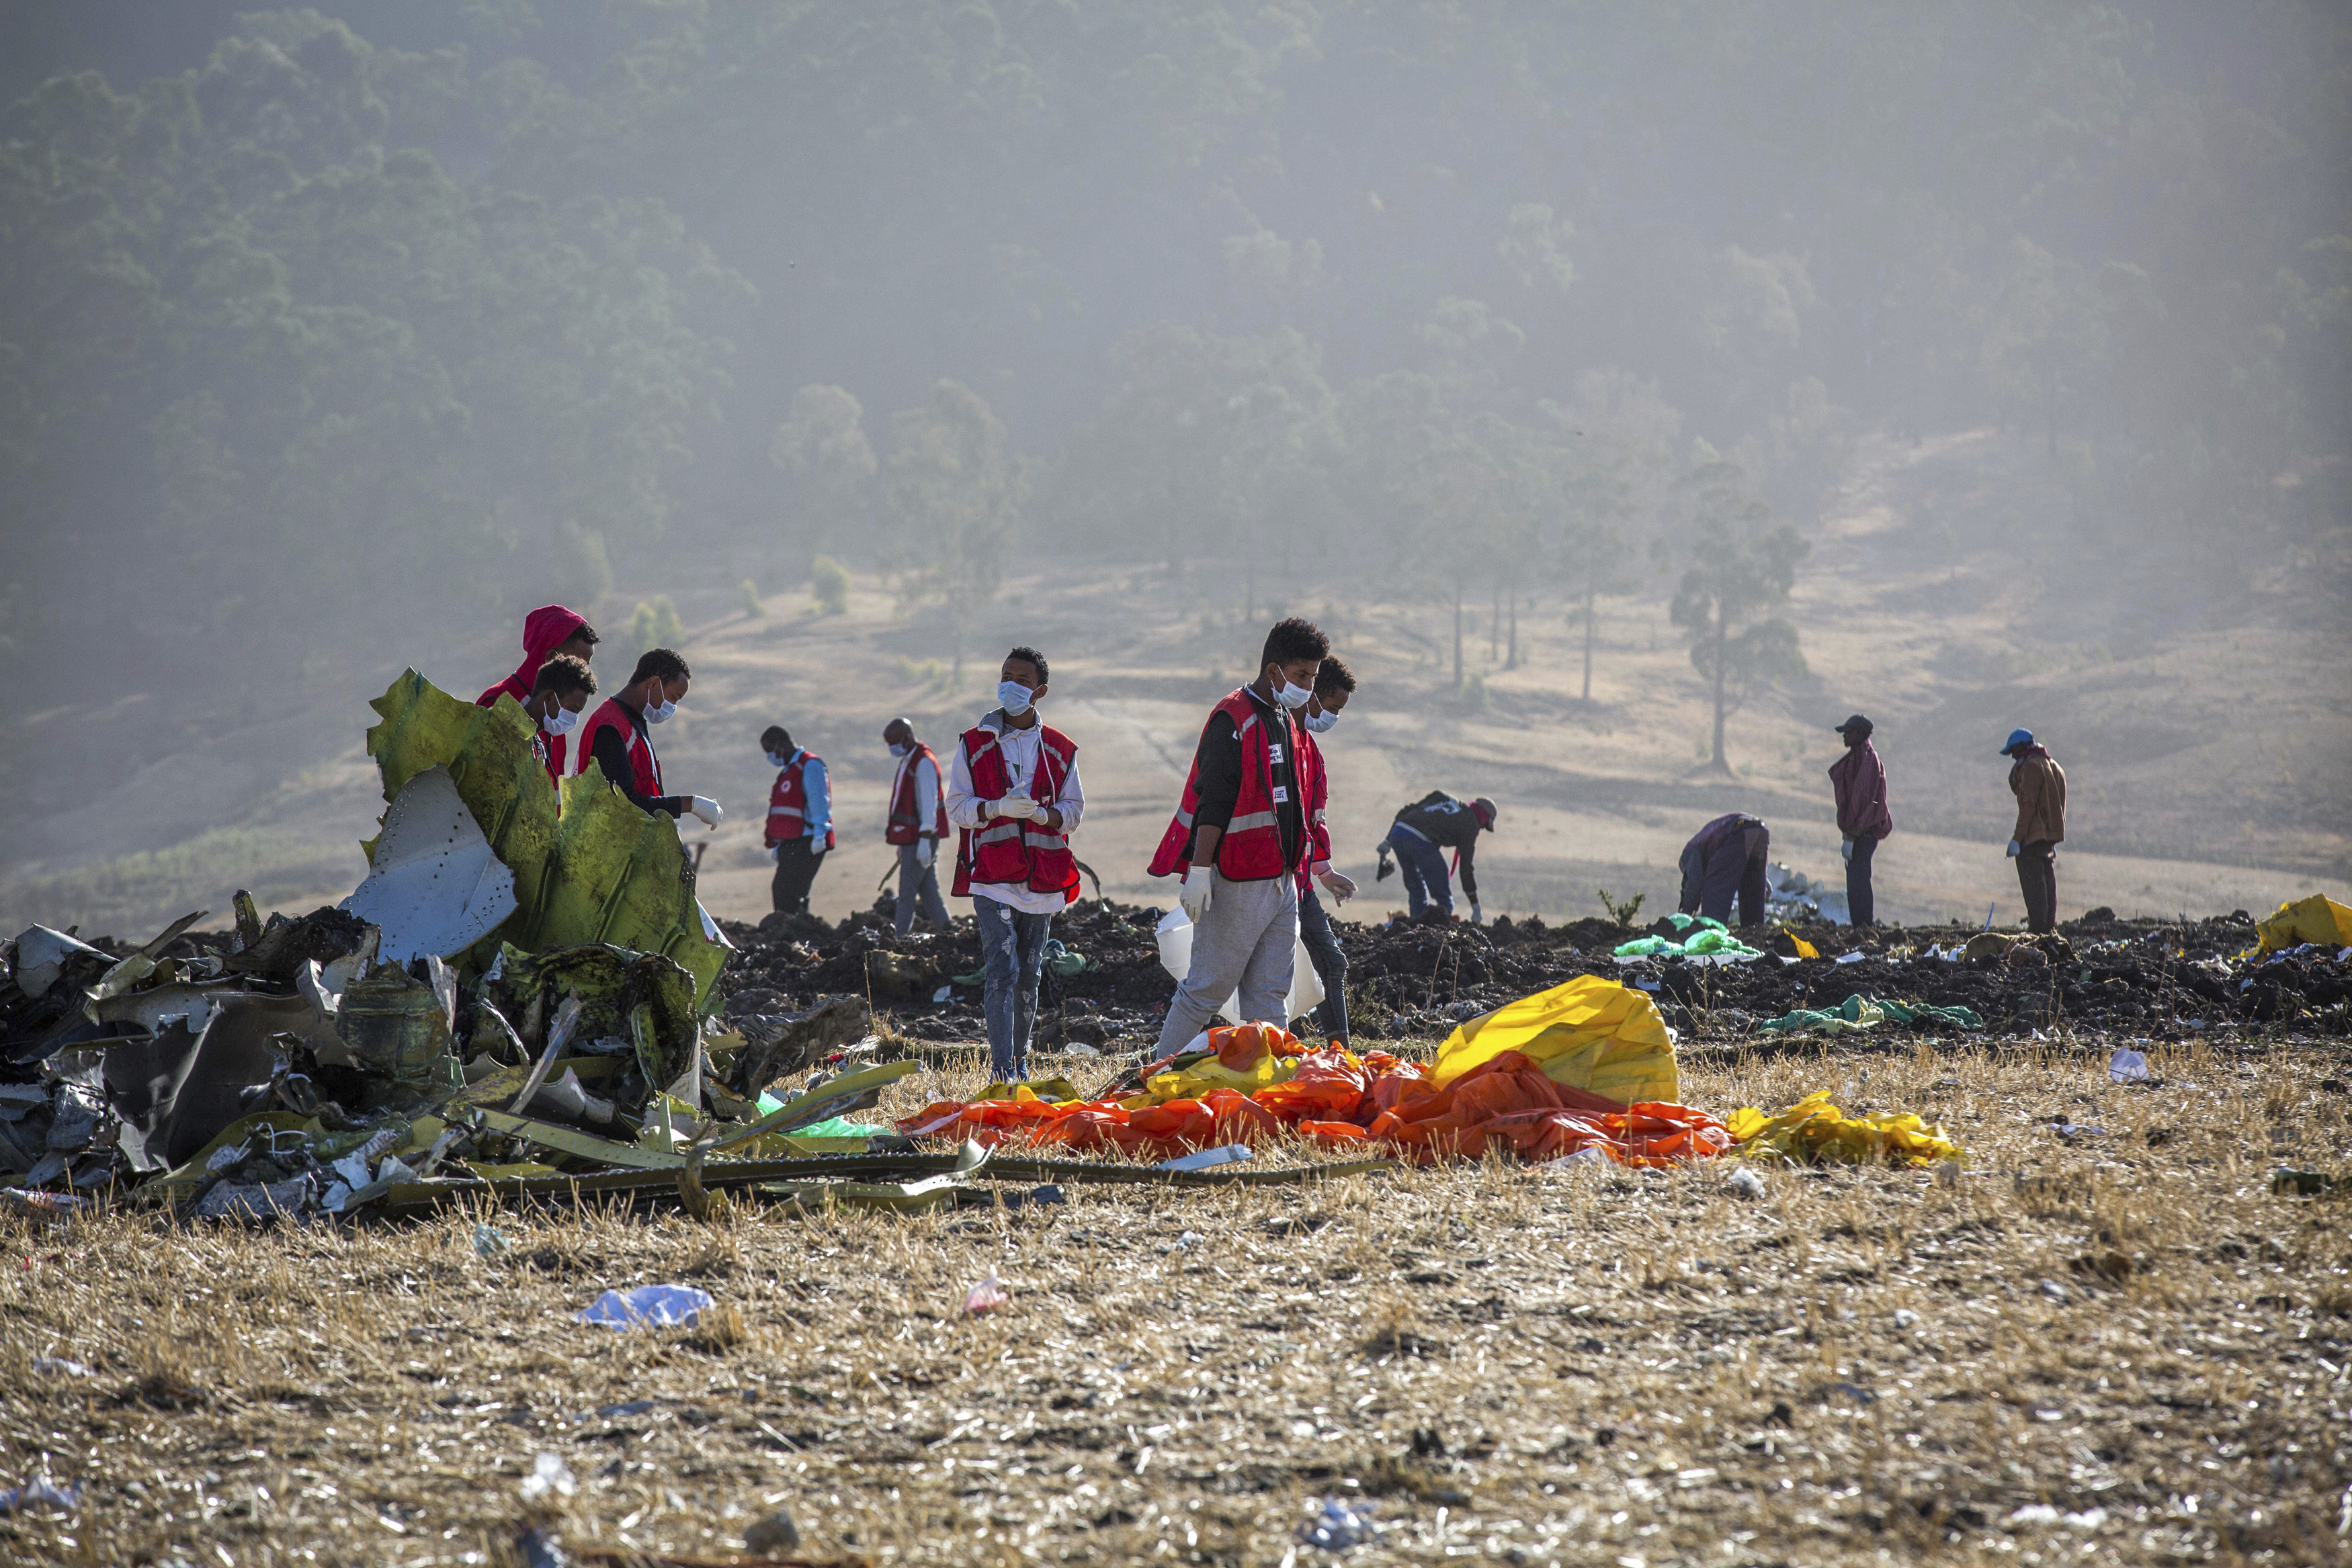 FILE- In this March 11, 2019, file photo rescuers work at the scene of an Ethiopian Airlines flight crash near Bishoftu, or Debre Zeit, south of Addis Ababa, Ethiopia. Investigators have determined that an anti-stall system automatically activated before the Ethiopian Airlines Boeing 737 Max jet plunged into the ground, The Wall Street Journal reported Friday, March 29. (AP Photo/Mulugeta Ayene, File)